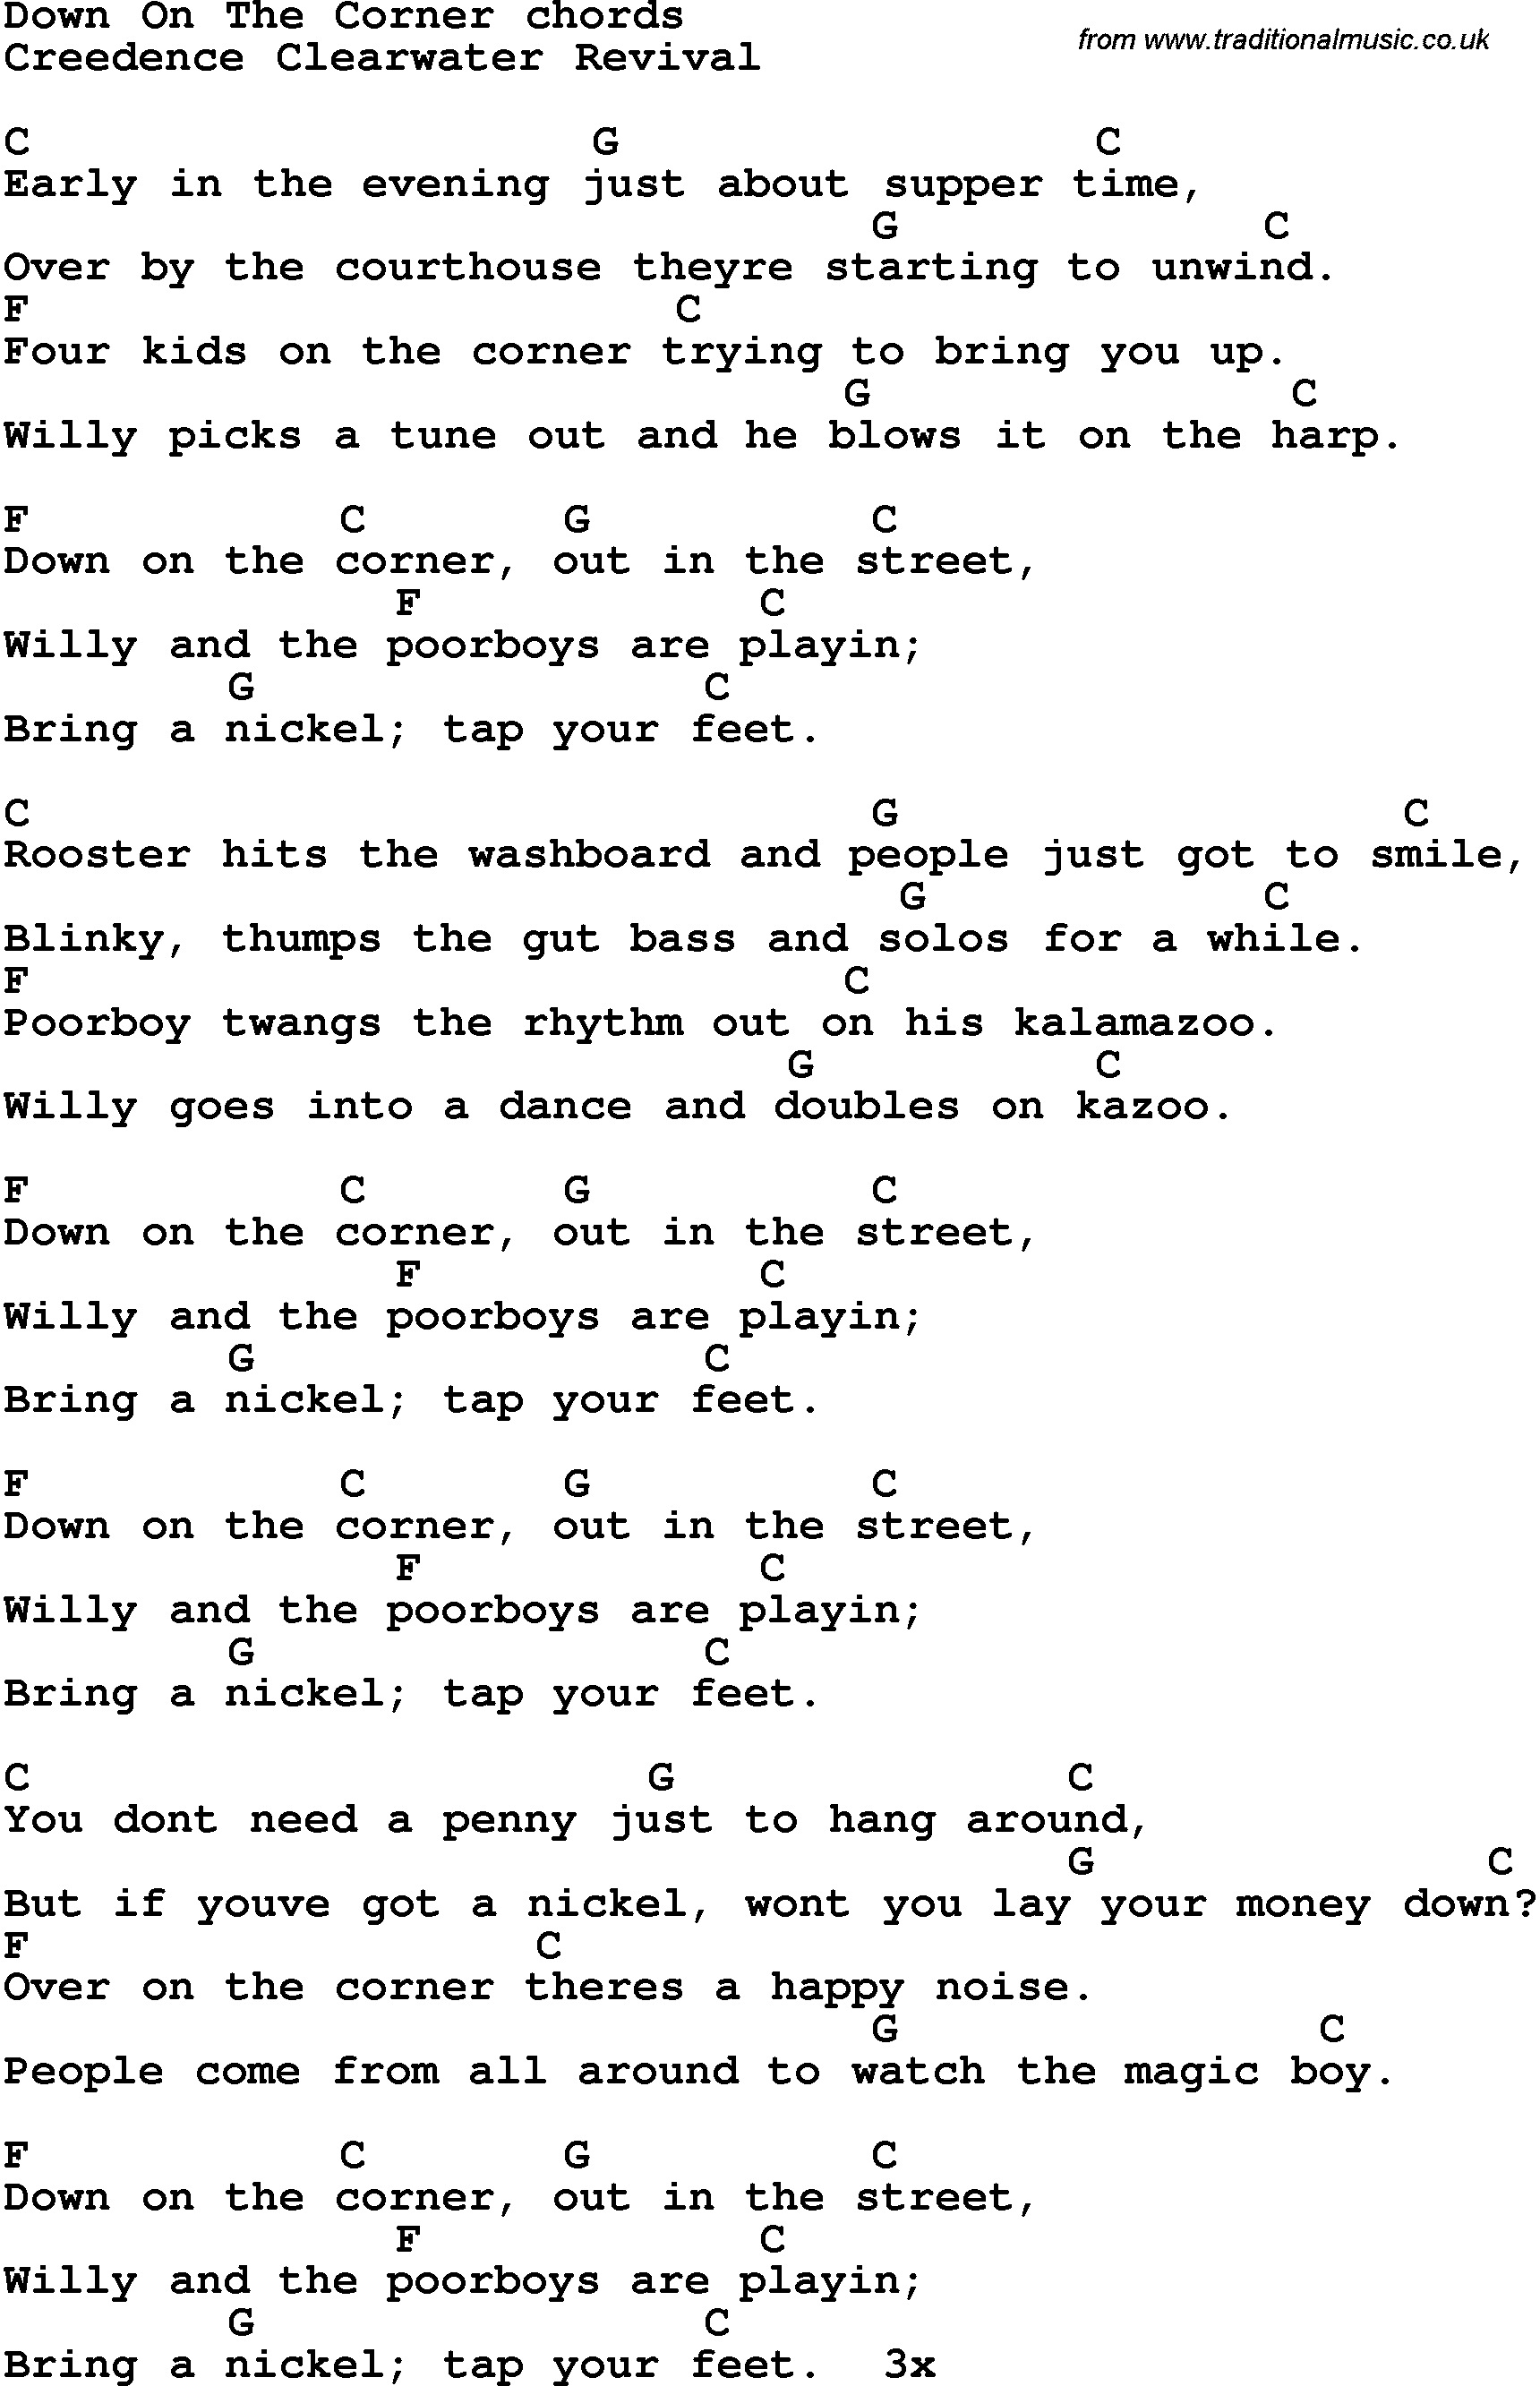 Our house chords - Song Lyrics With Guitar Chords For Down On The Corner